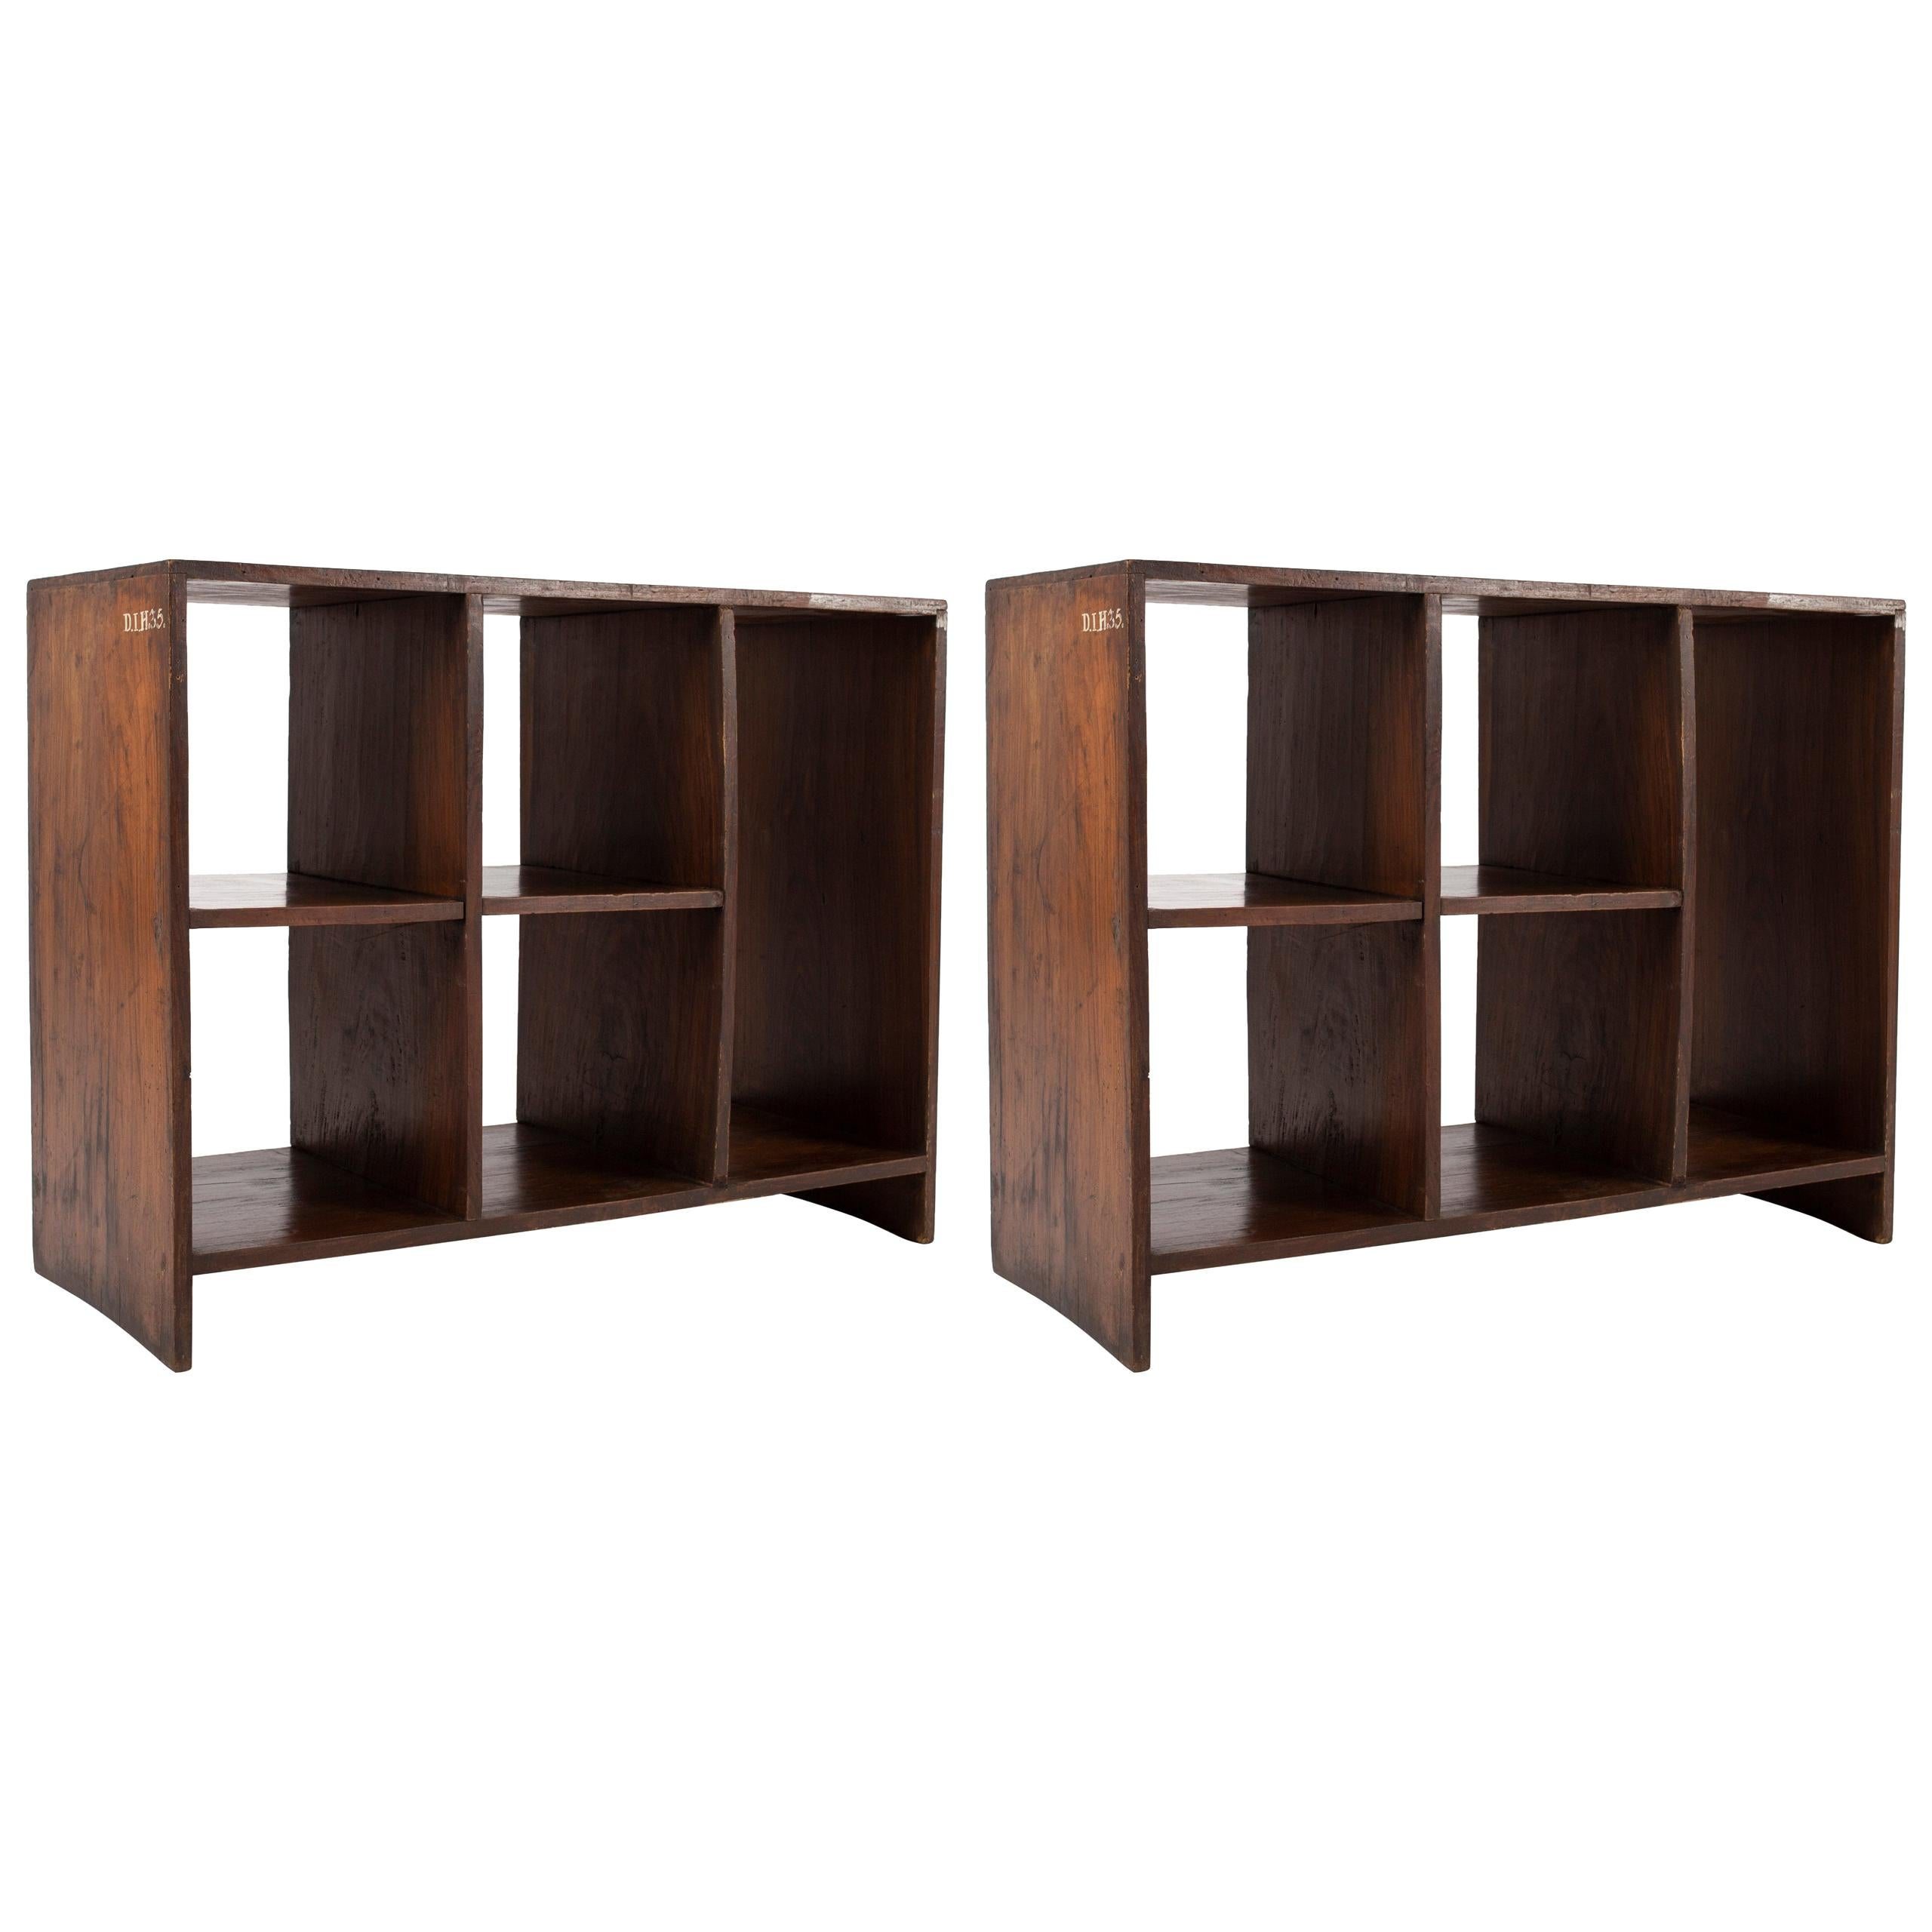 Pierre Jeanneret Pair of Bookcases, Circa 1957